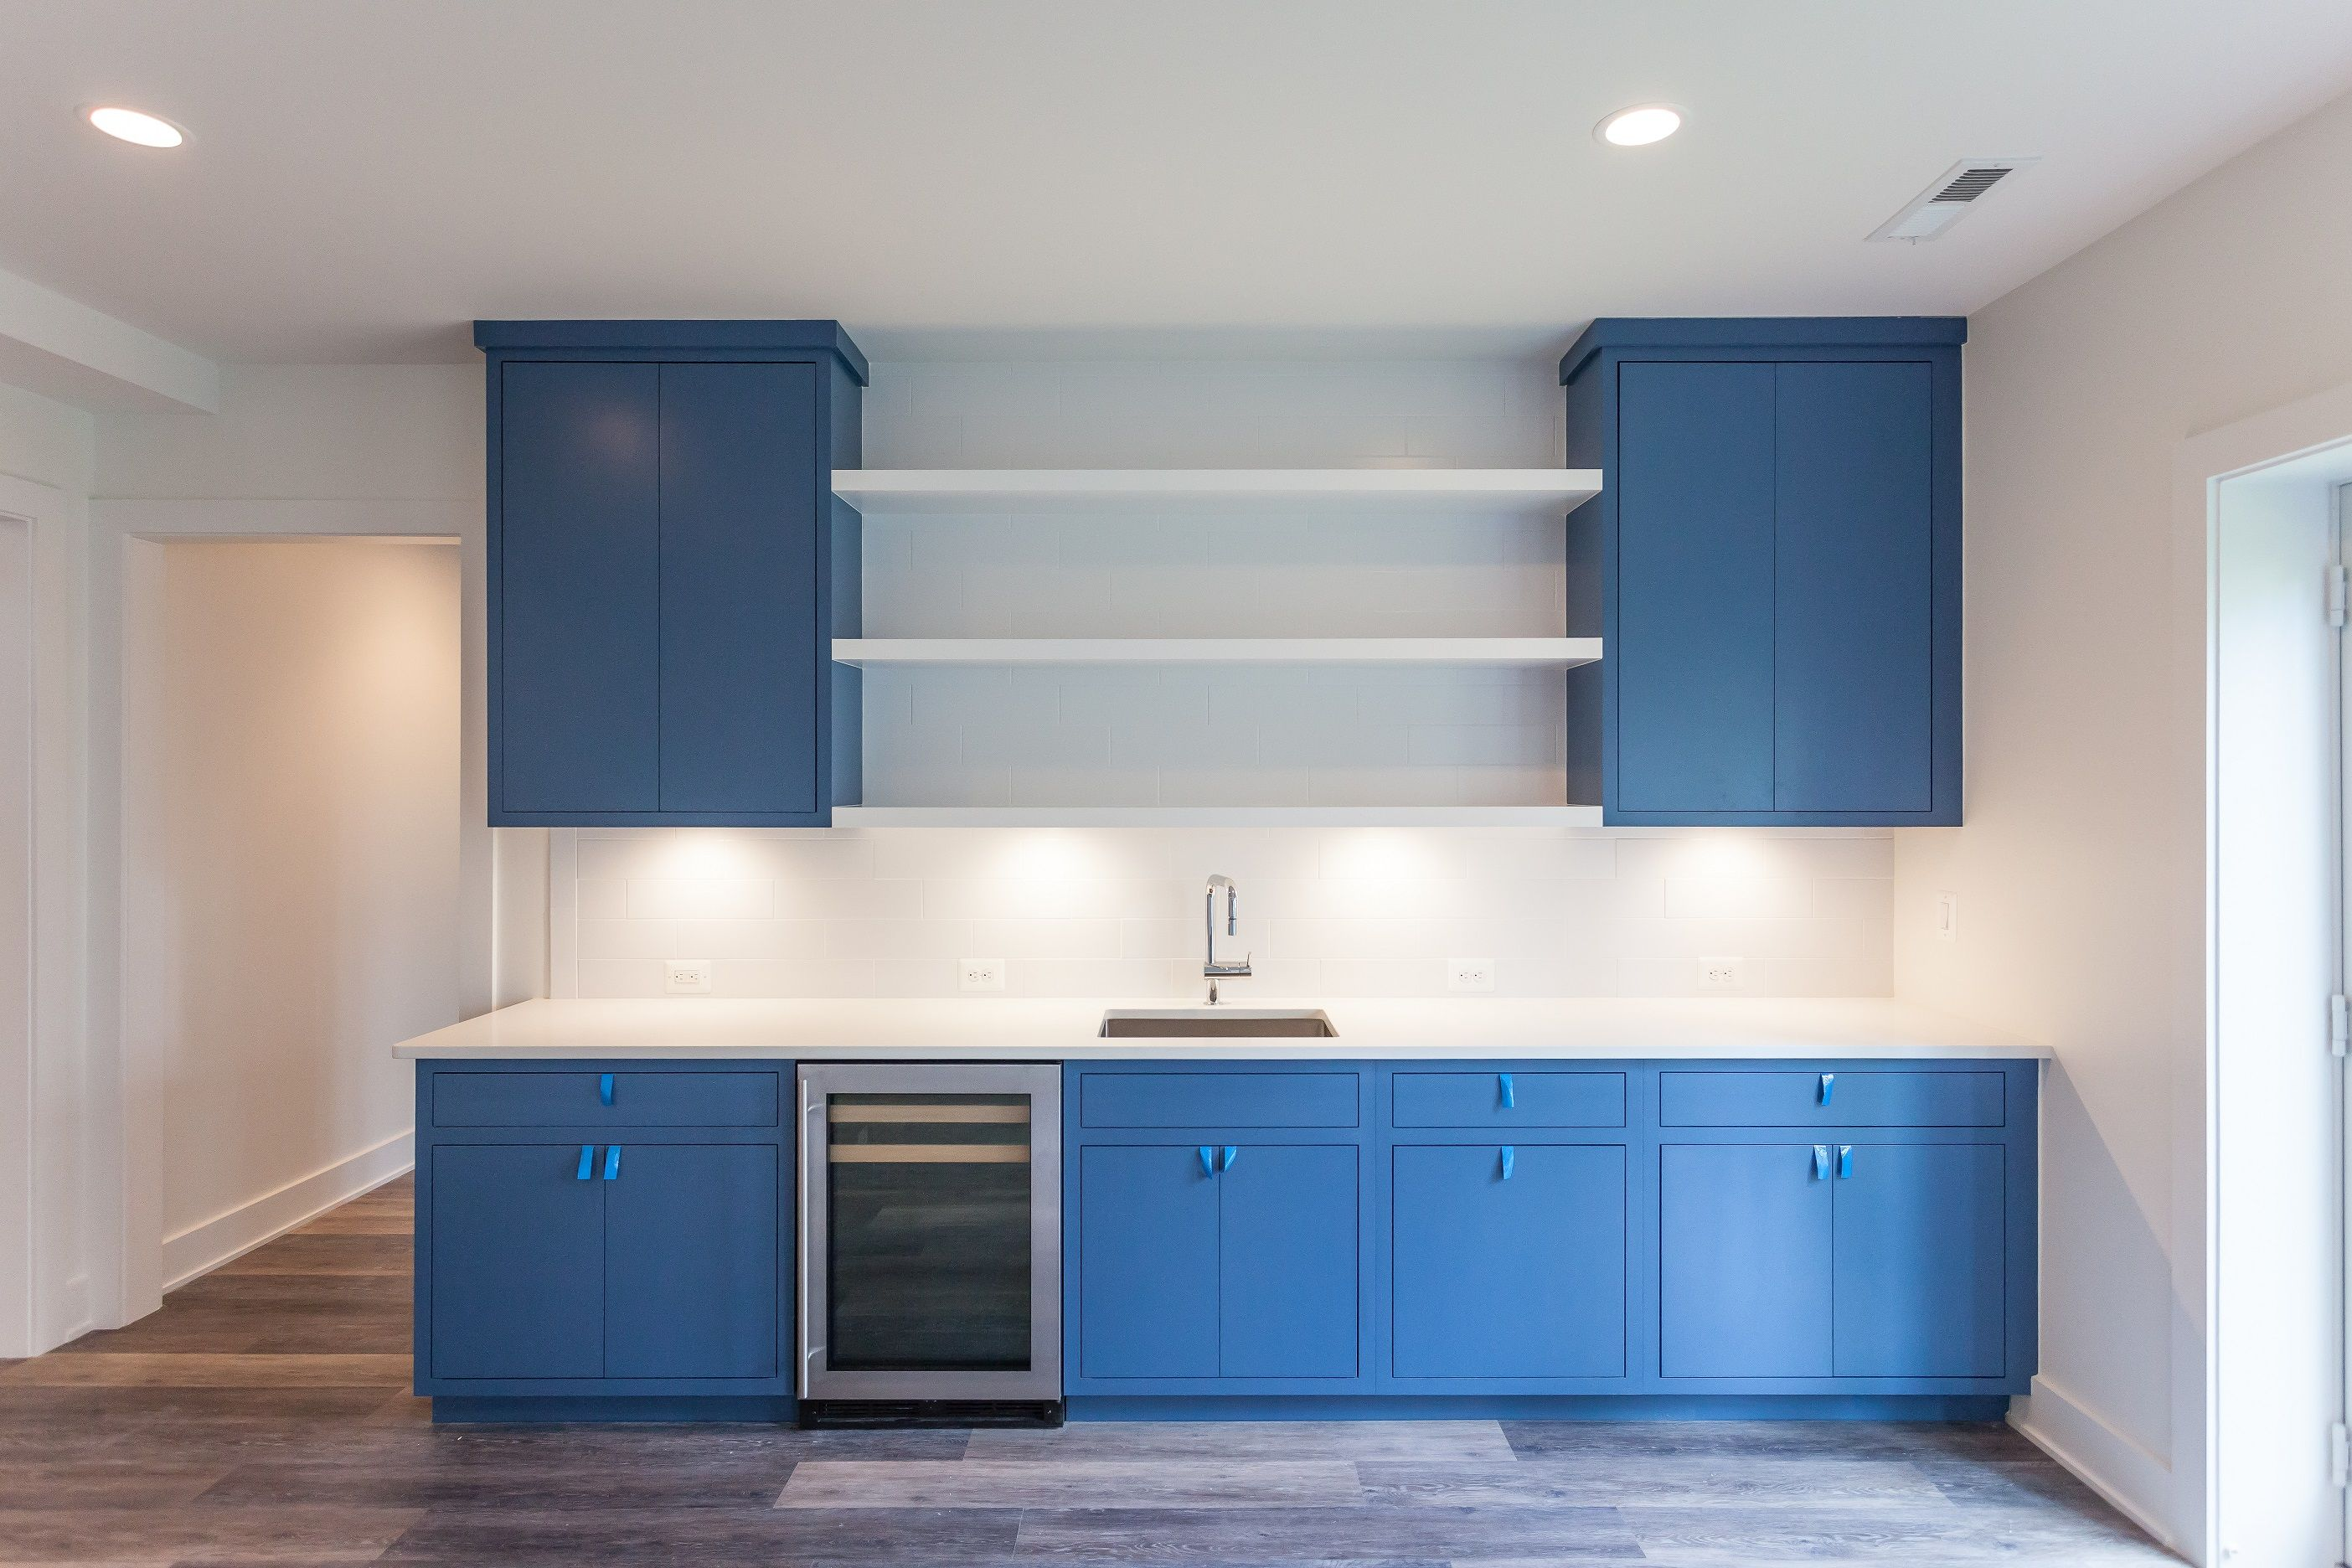 Royal Navy Blue Inset Slab Cabinets With White Subway Tile And